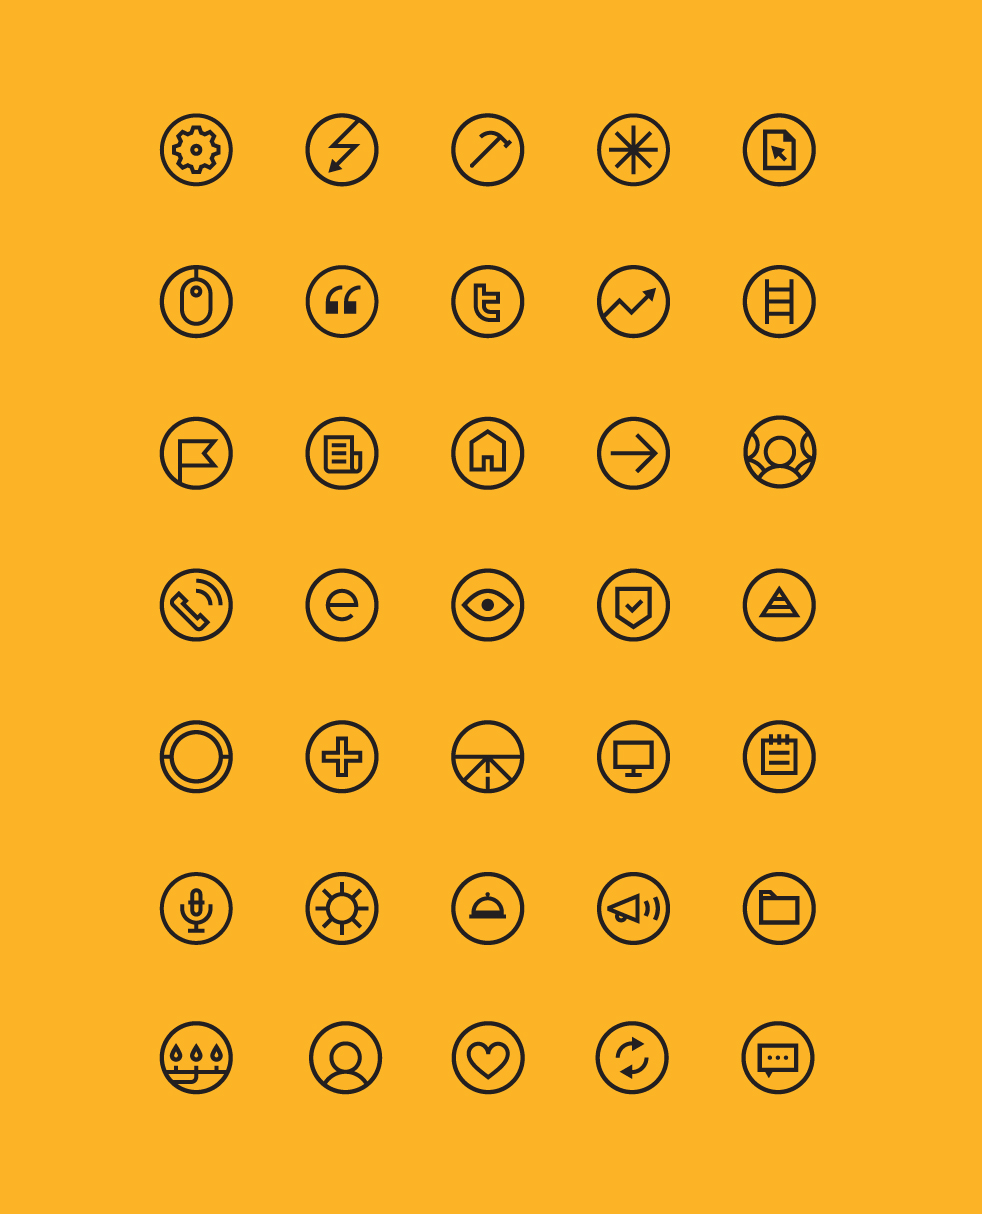 A set of brand icons designed for Enbridge.